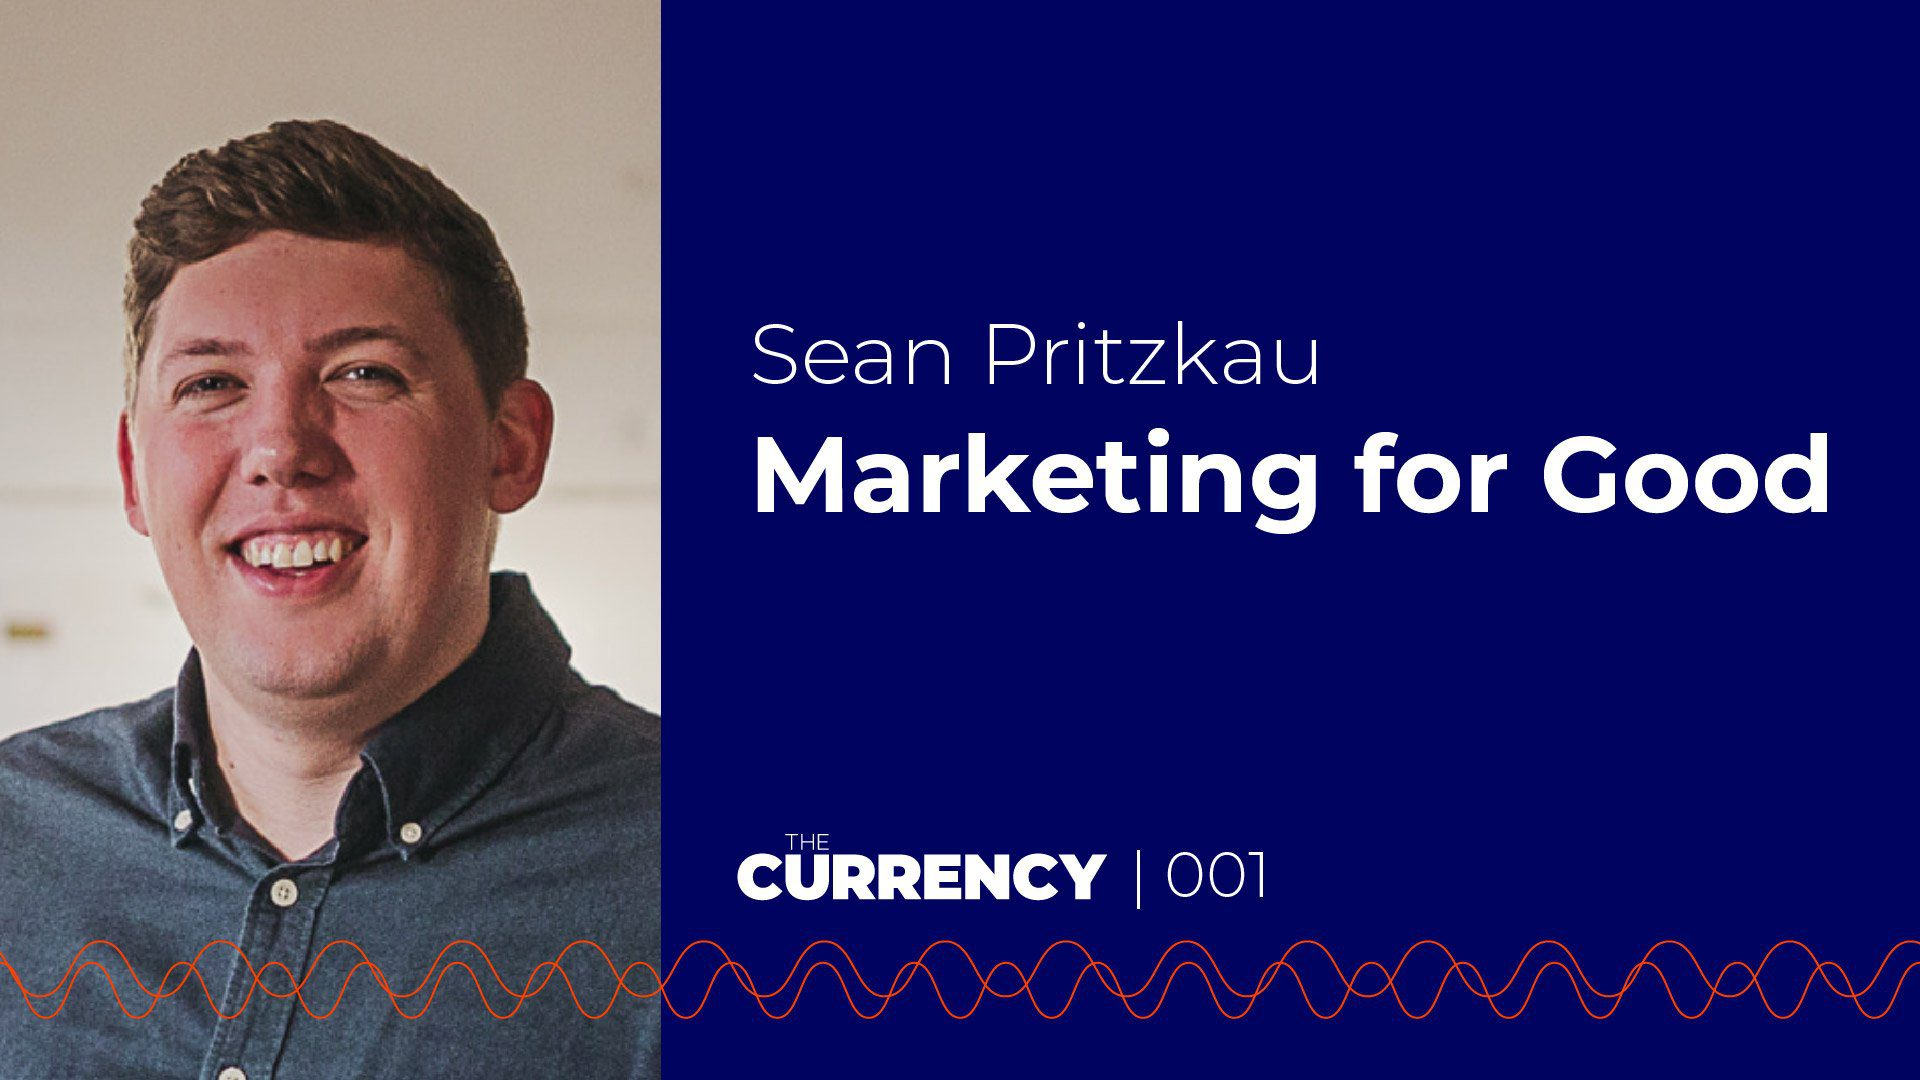 The Currency Podcast 001 Sean Pritzkau